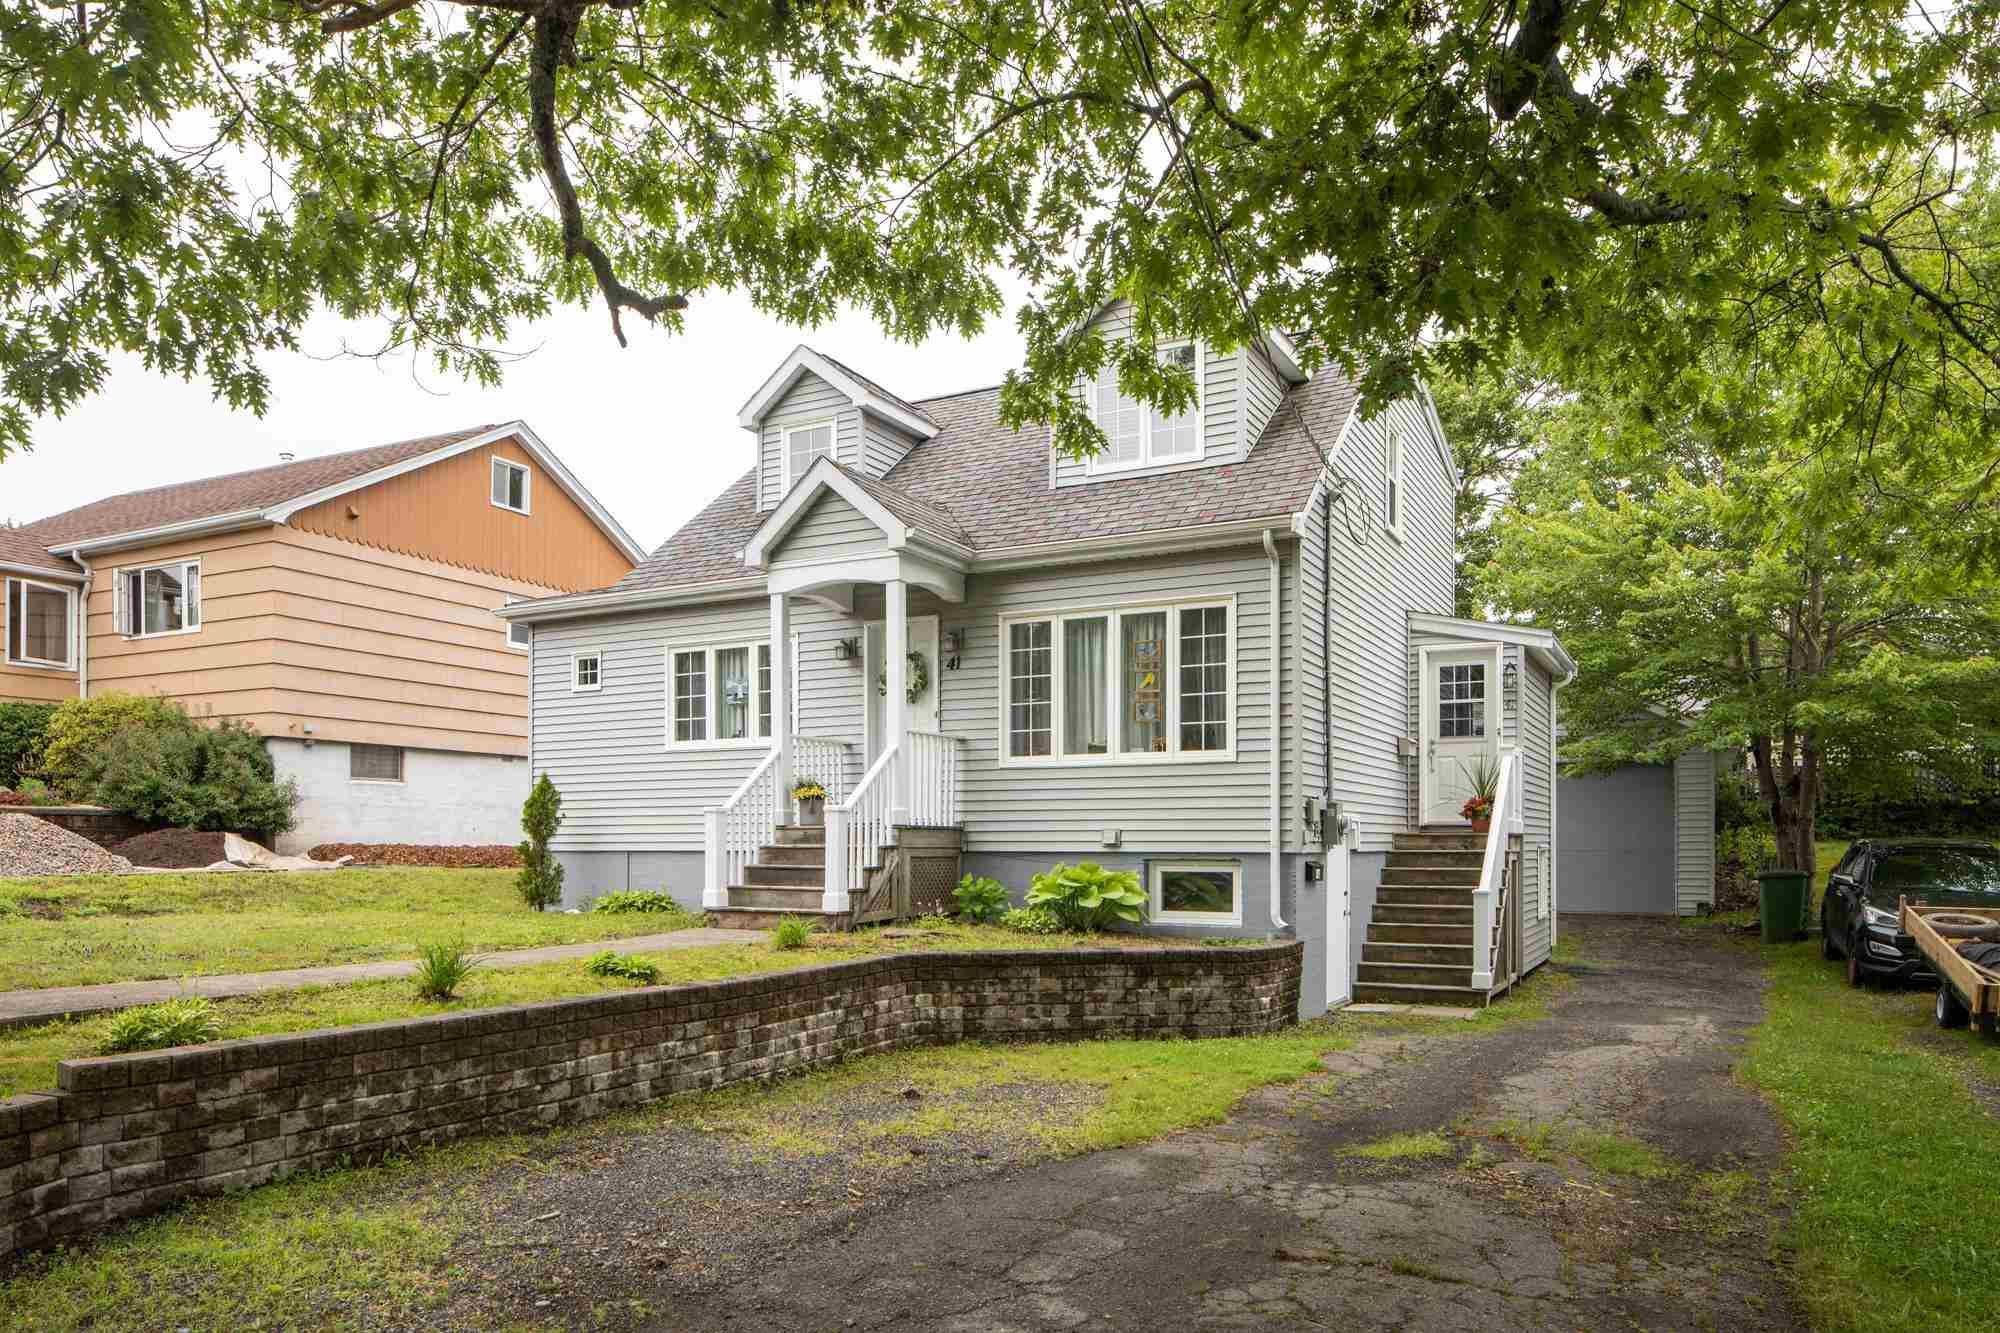 Main Photo: 41 Central Avenue in Halifax: 6-Fairview Multi-Family for sale (Halifax-Dartmouth)  : MLS®# 202116974